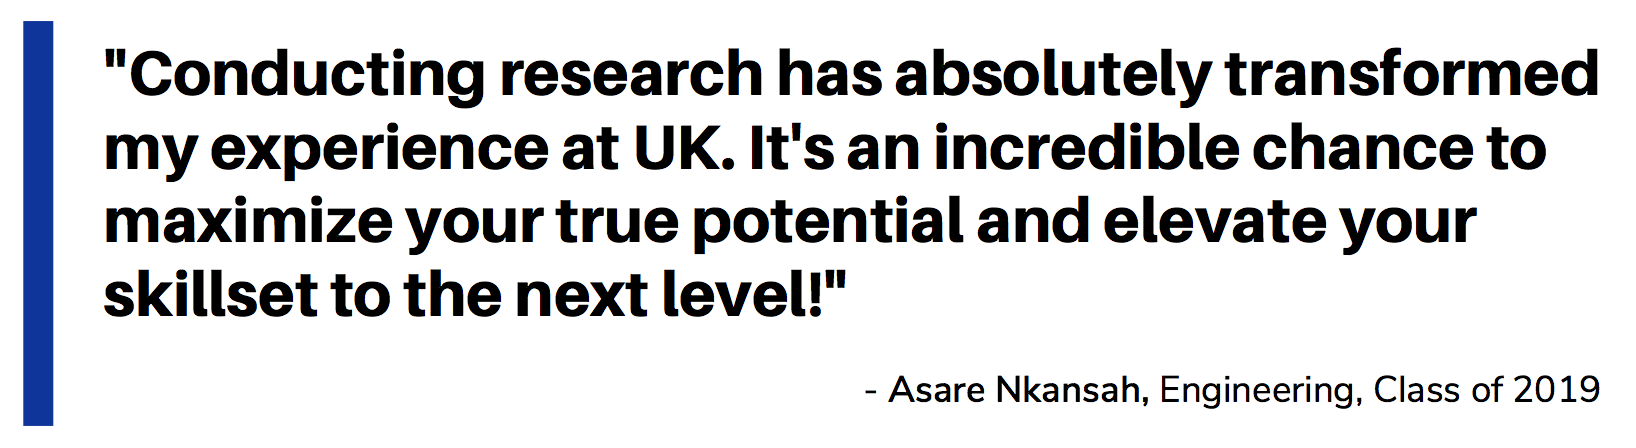 Quote_Asare Nkansah_Conducting research has absolutely transformed my experience at UK. It's an incredible chance to maximize your true potential and elevate your skillset to the next level!